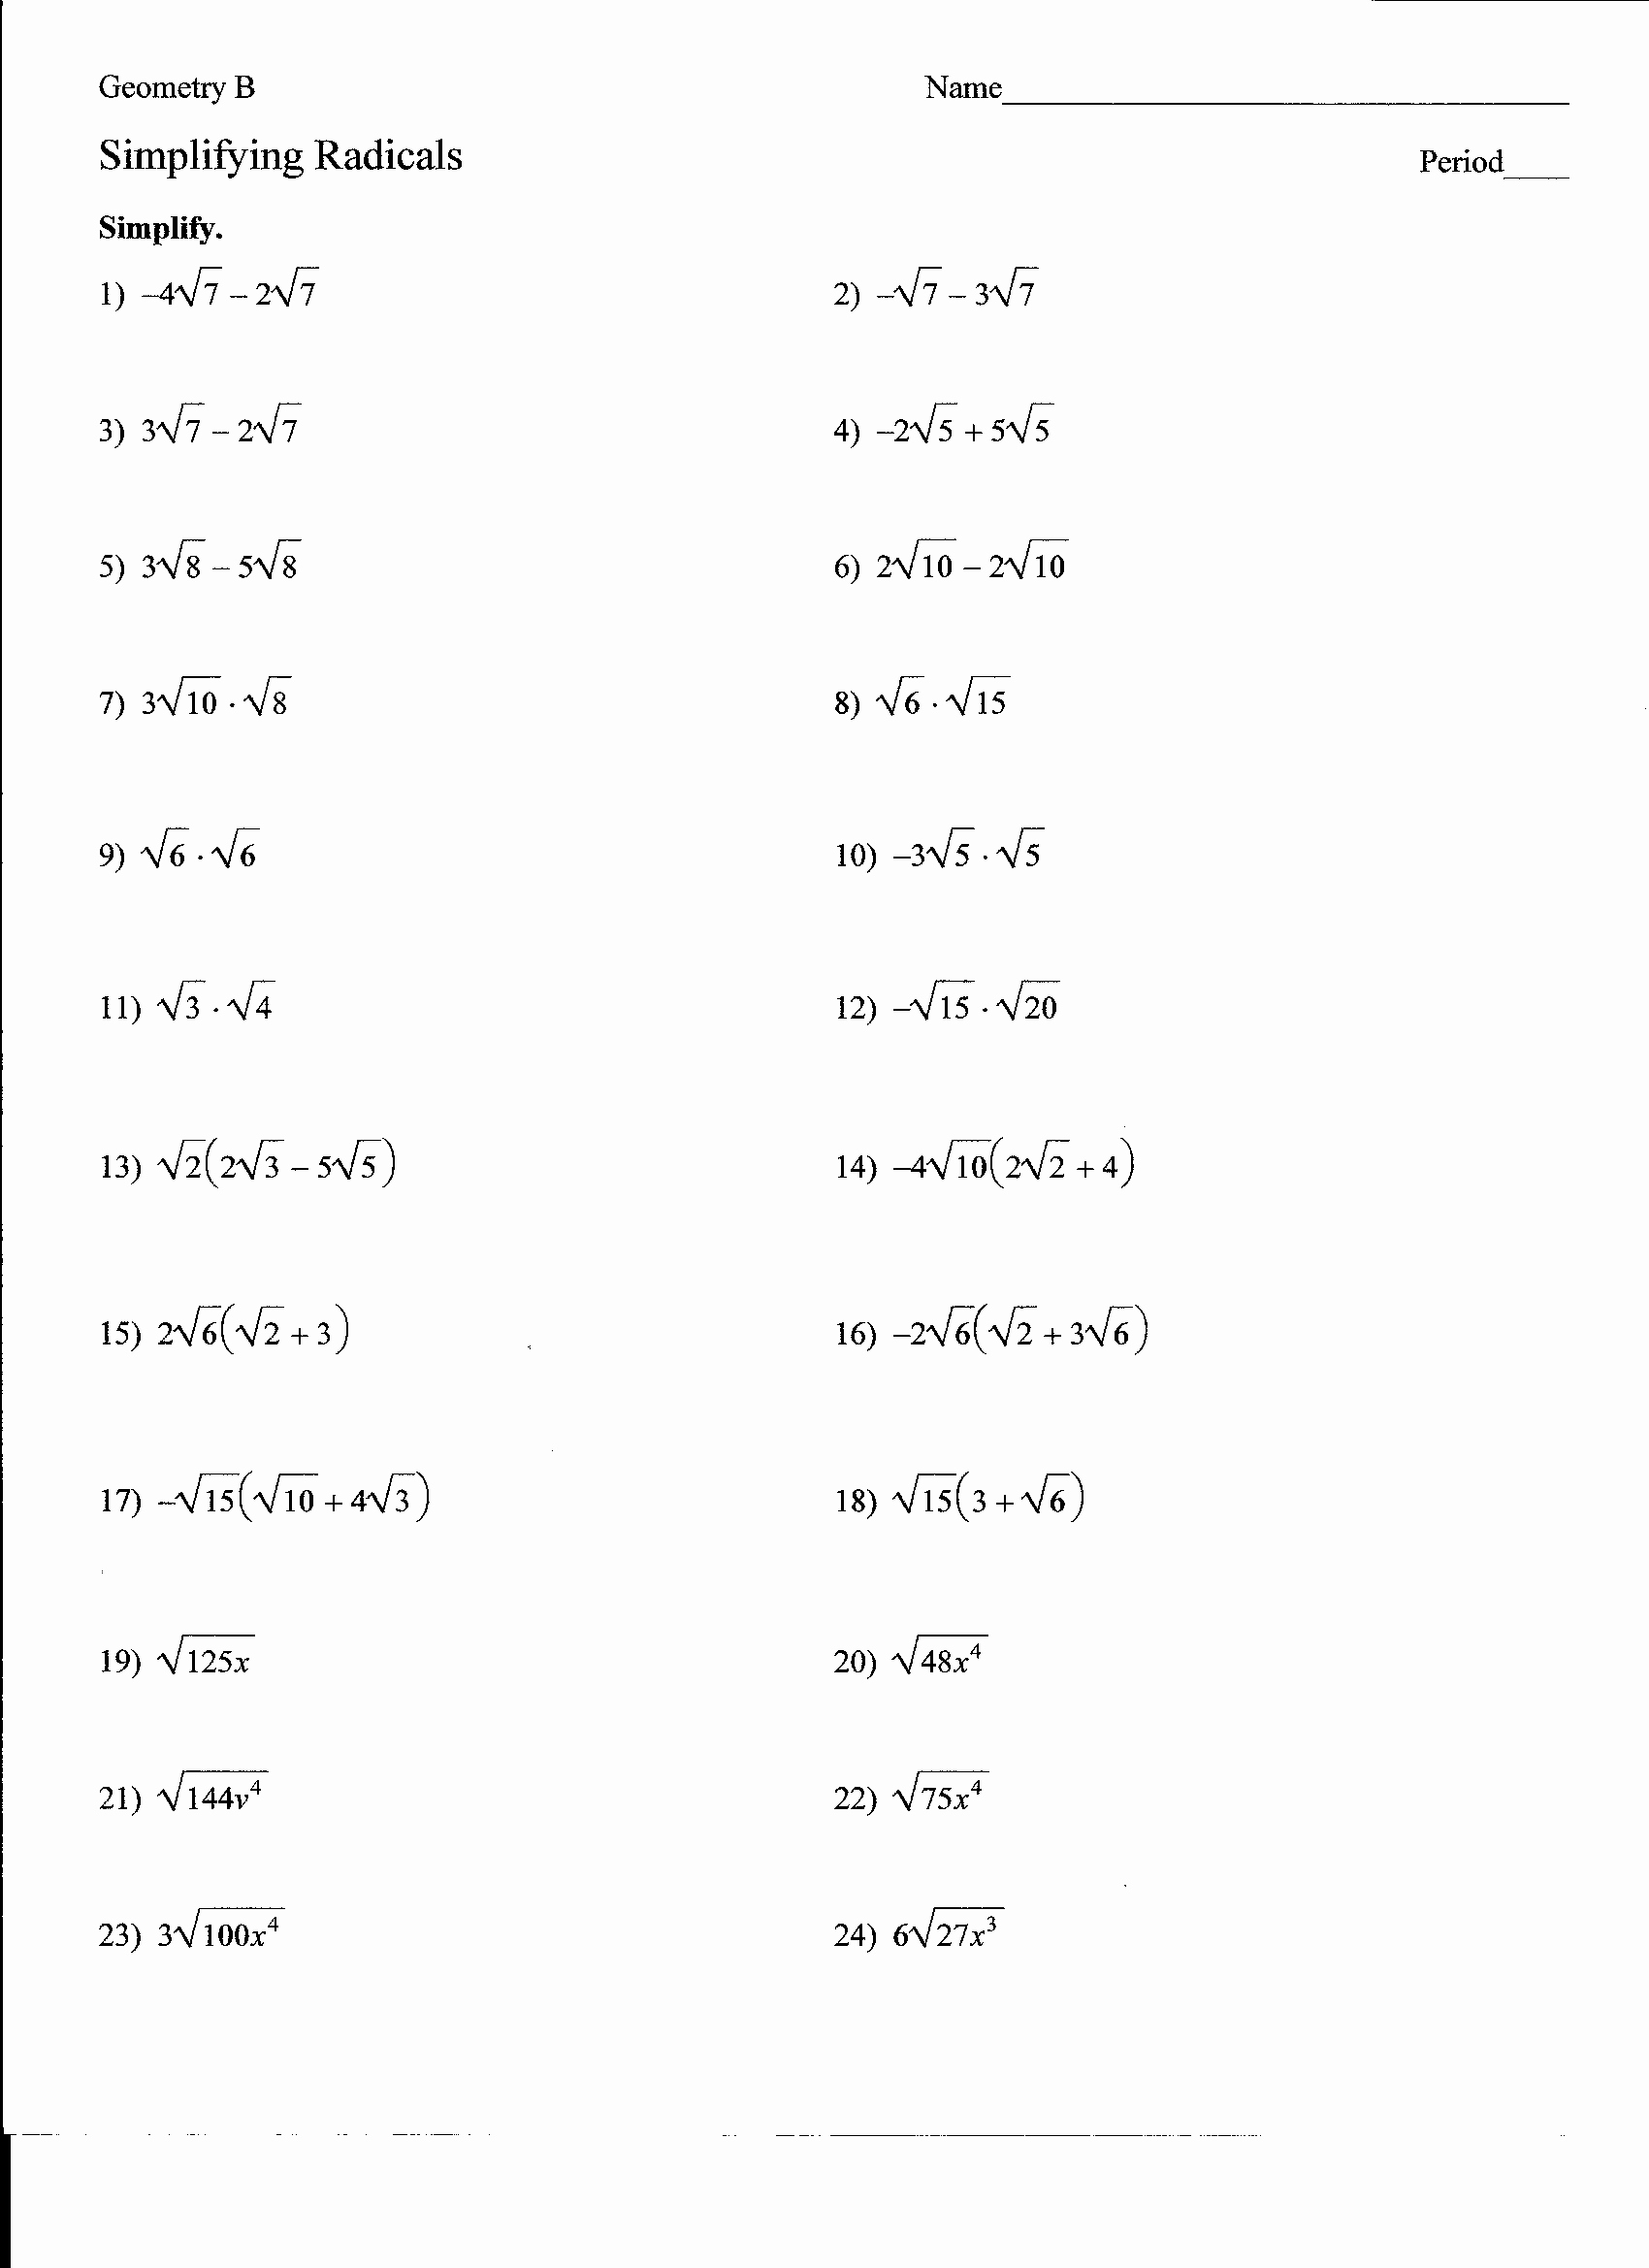 Simplifying Radicals Worksheet with Answers Awesome 19 Best Of Multiplying and Dividing Radicals